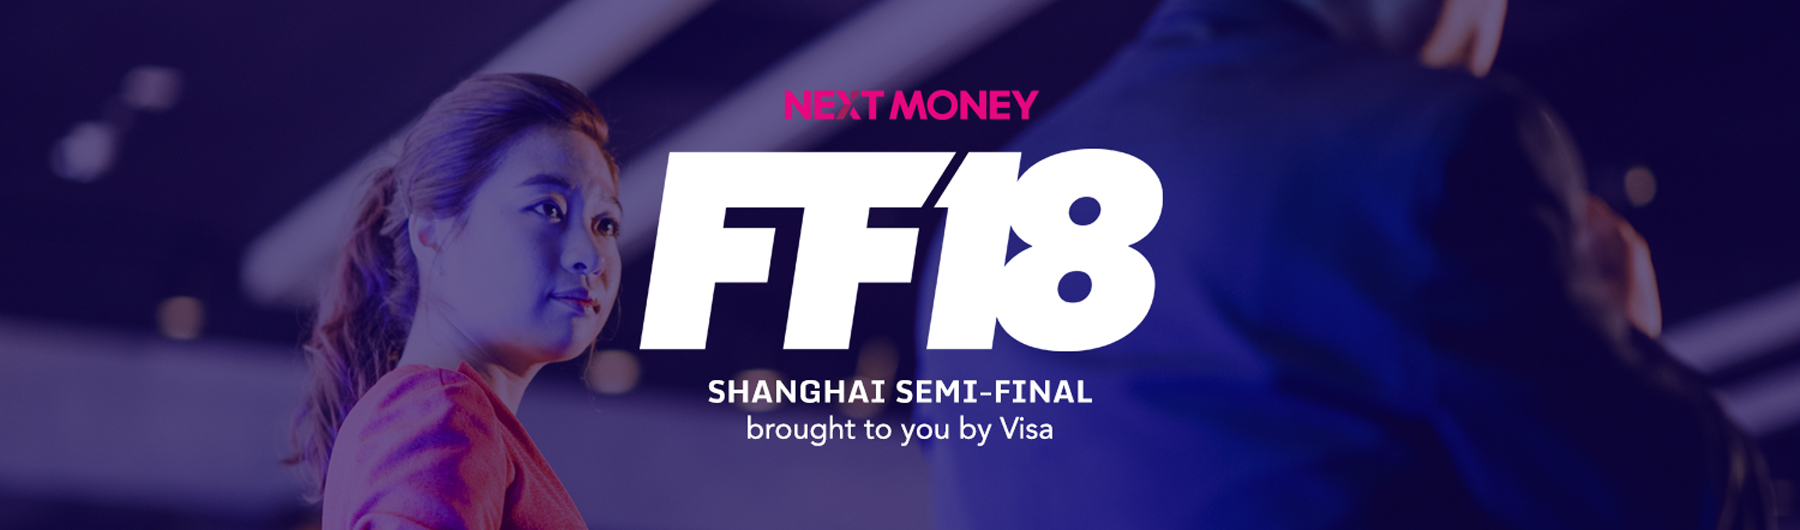 FF18 Shanghai Semi-Final Fintech Pitch Competition